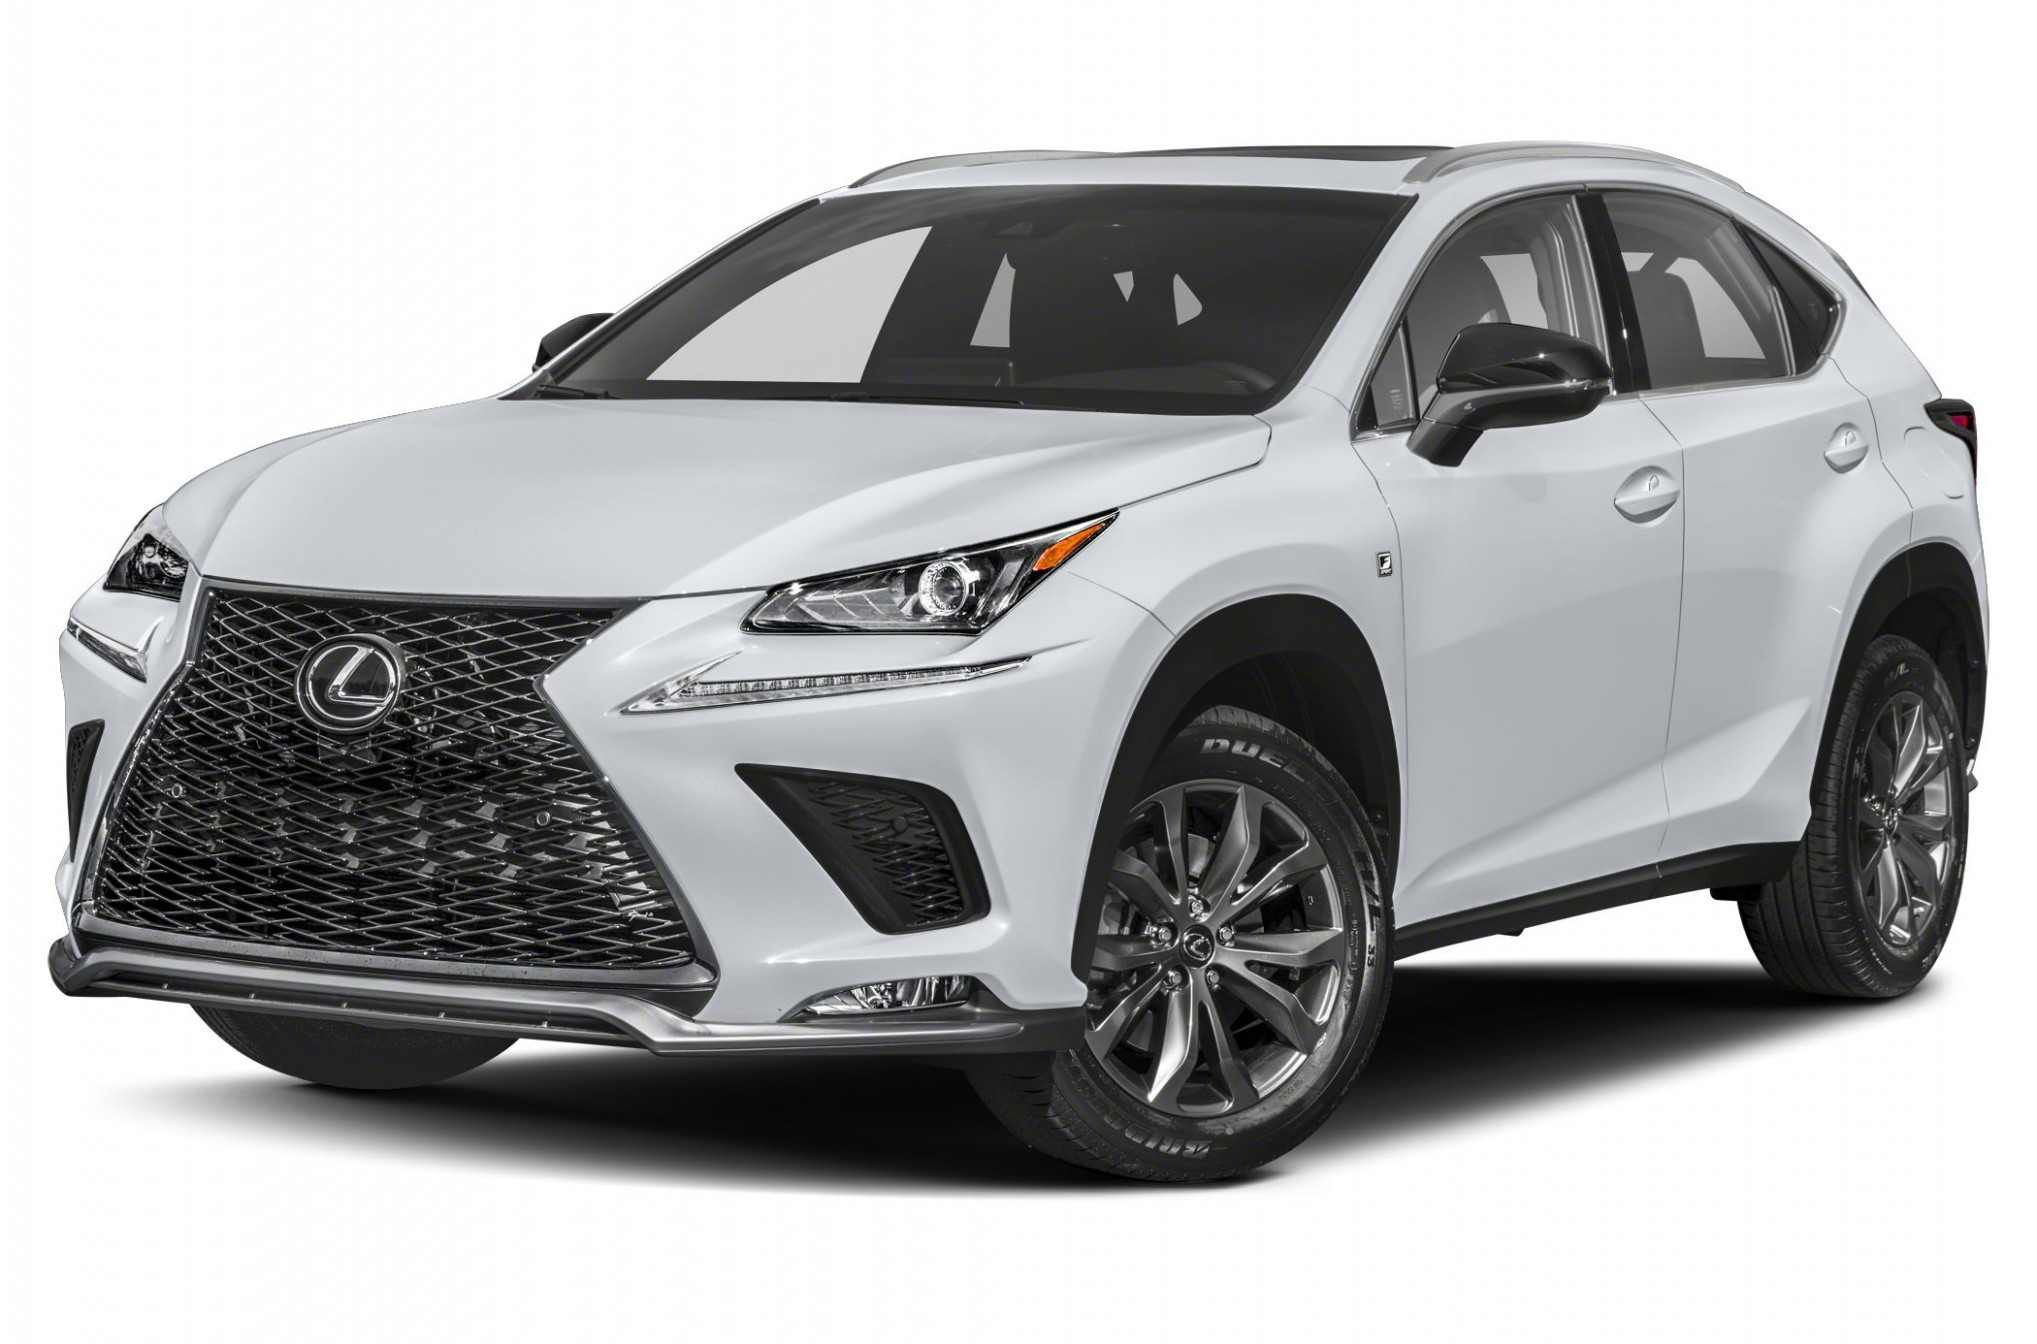 7 Lexus NX 7 F SPORT 7dr All-wheel Drive Specs and Prices